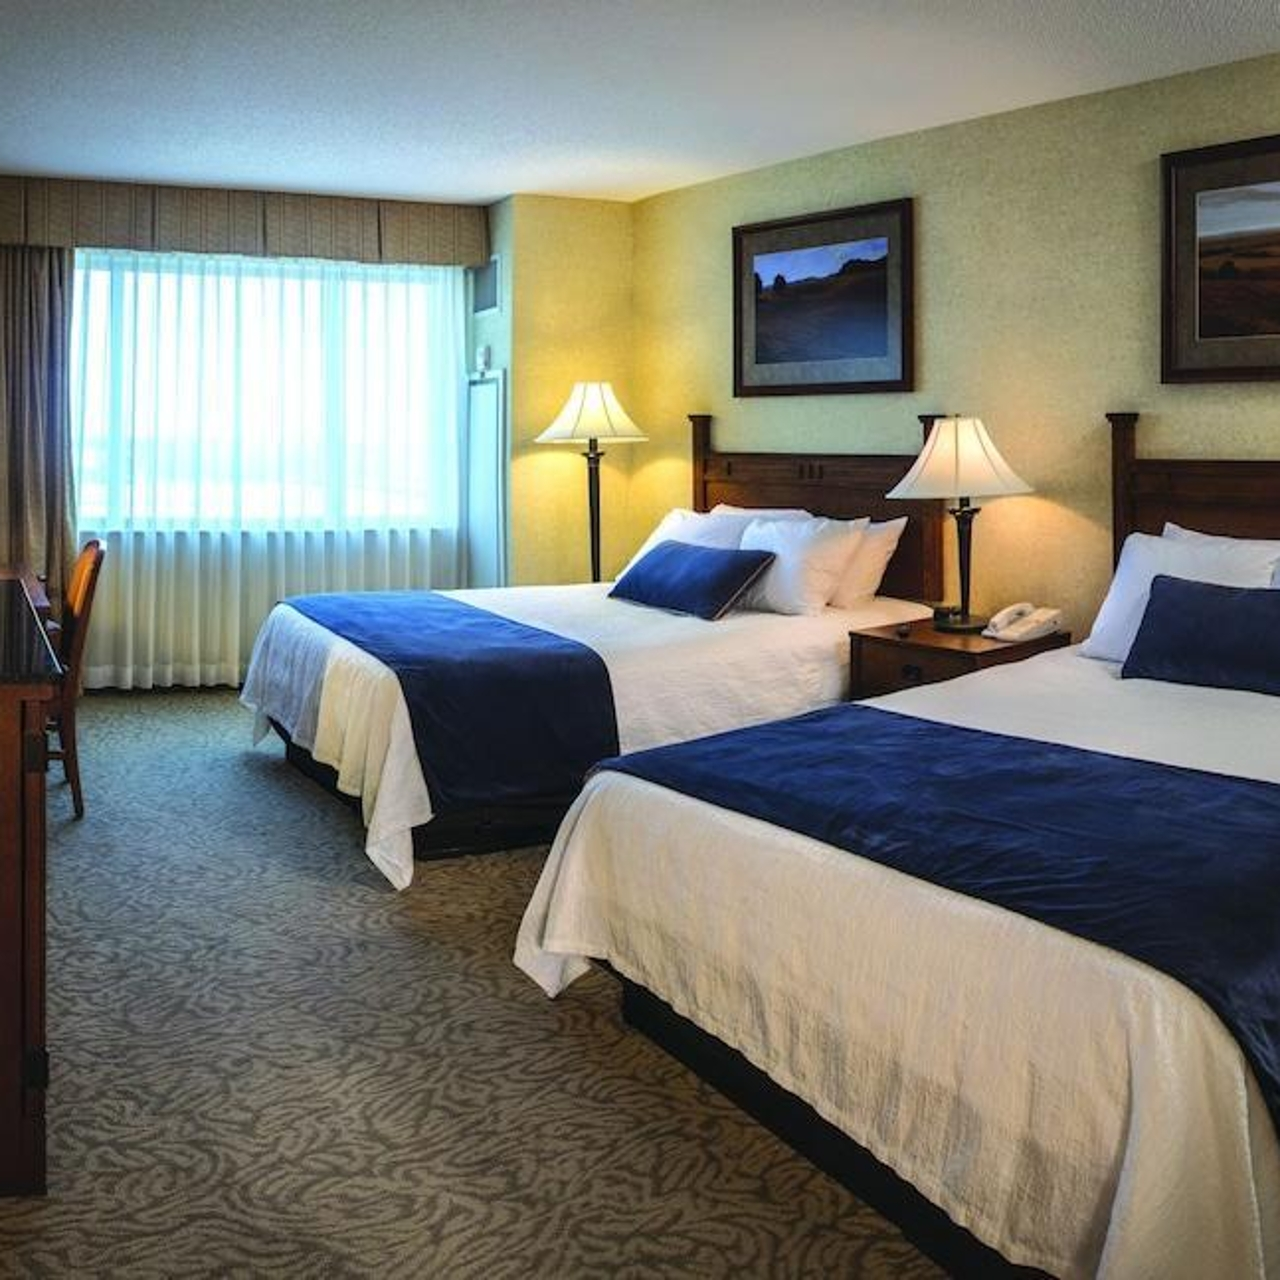 Hotel Grand Casino Hinckley United States Of America At Hrs With Free Services